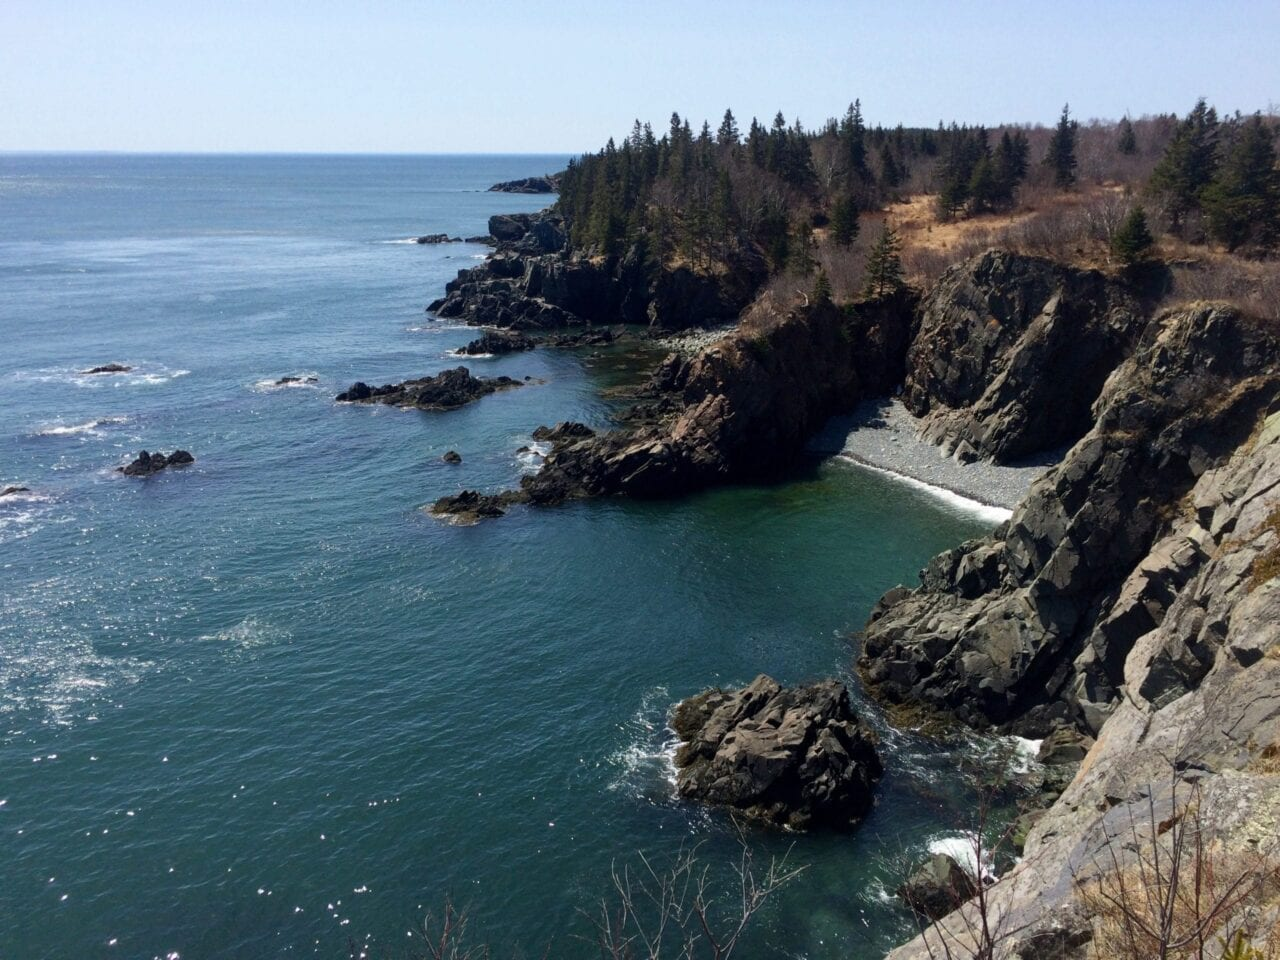 Teal ocean water meets prominent rocky cliffs on Maine's coastline.